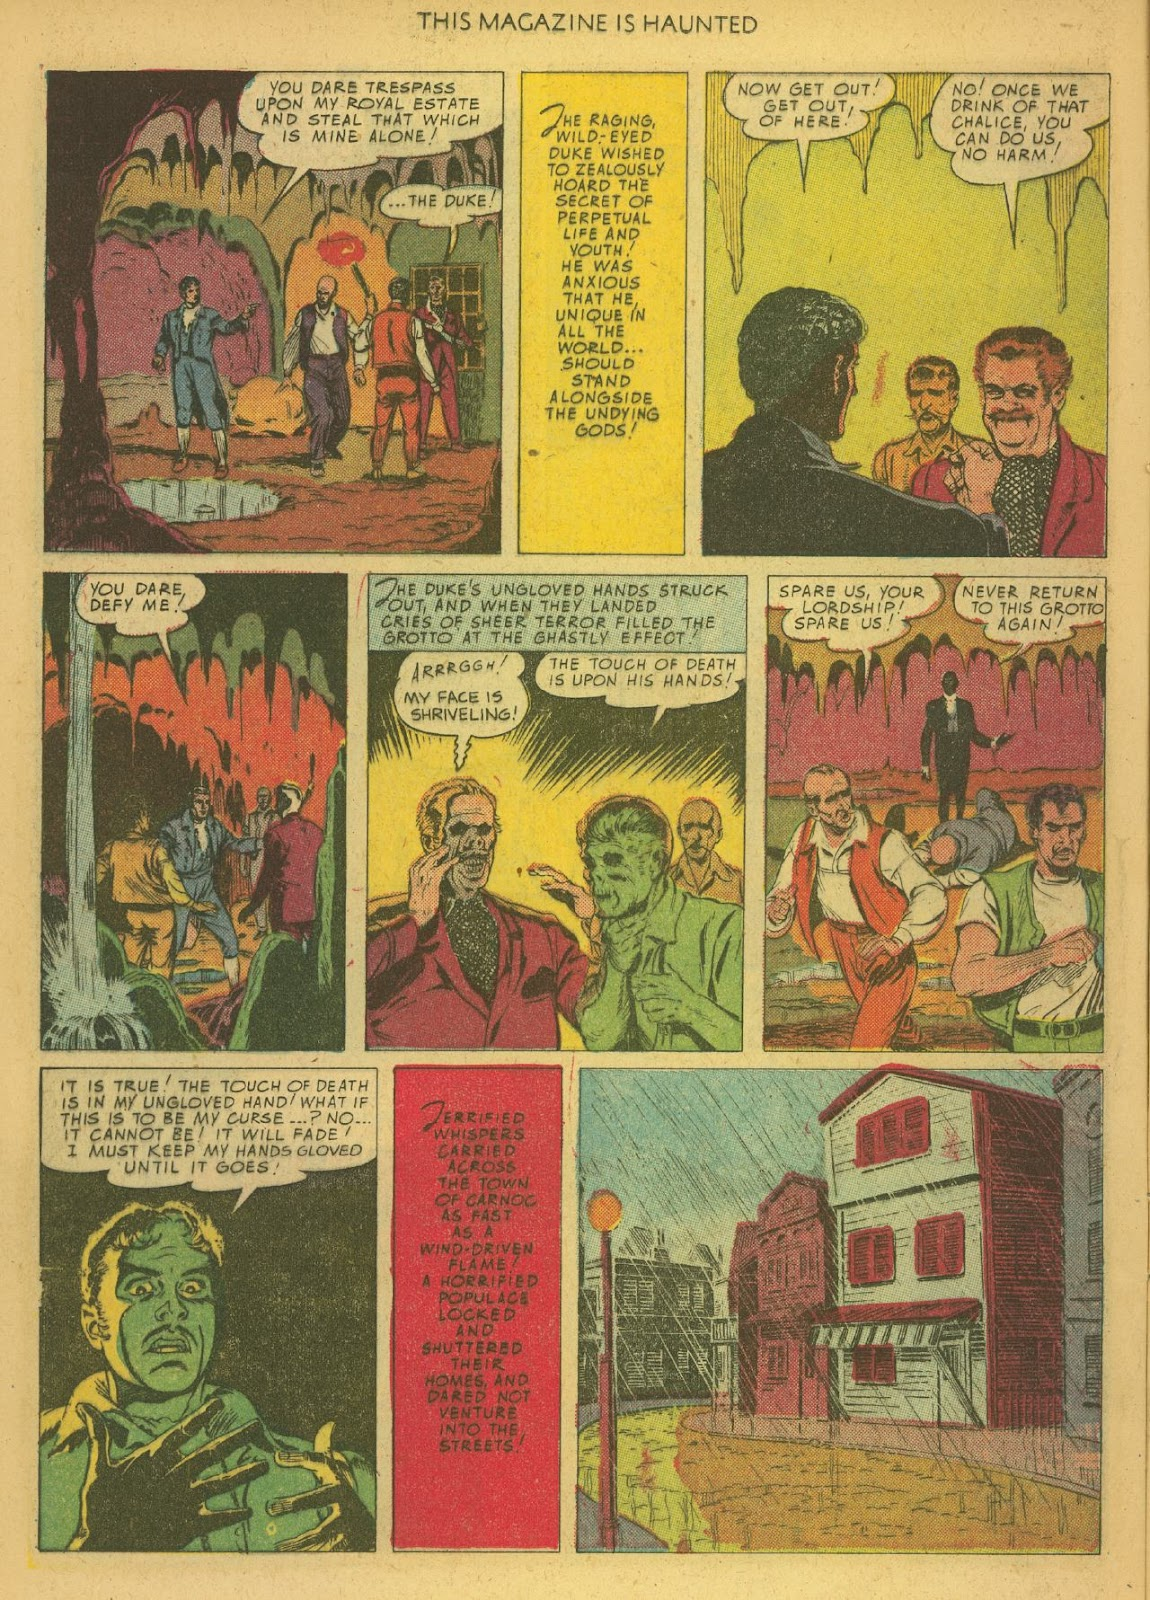 Read online This Magazine Is Haunted comic -  Issue #1 - 12